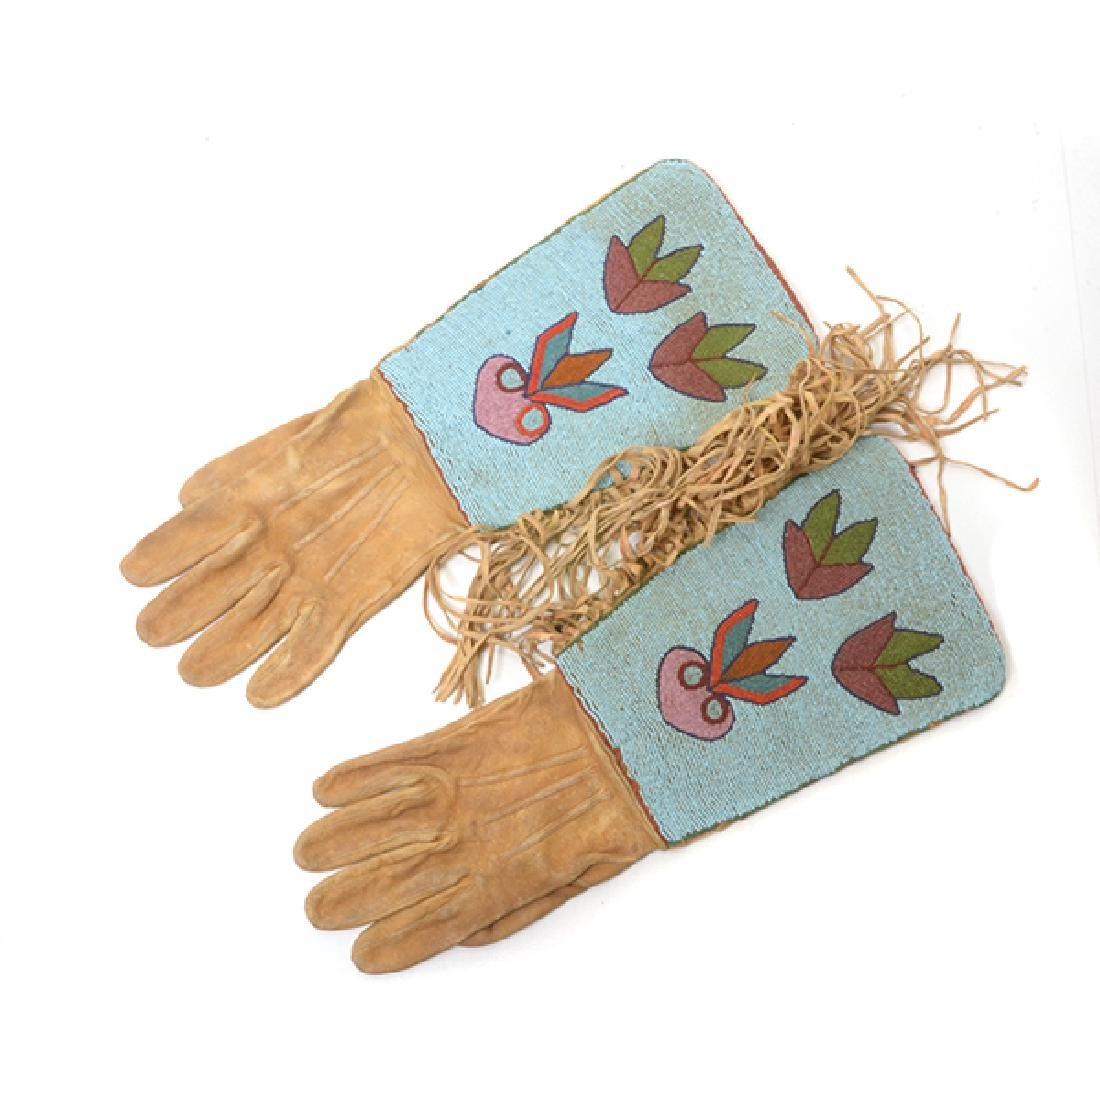 Pair of Northern Plains Beaded Gloves and Moccasins - 4